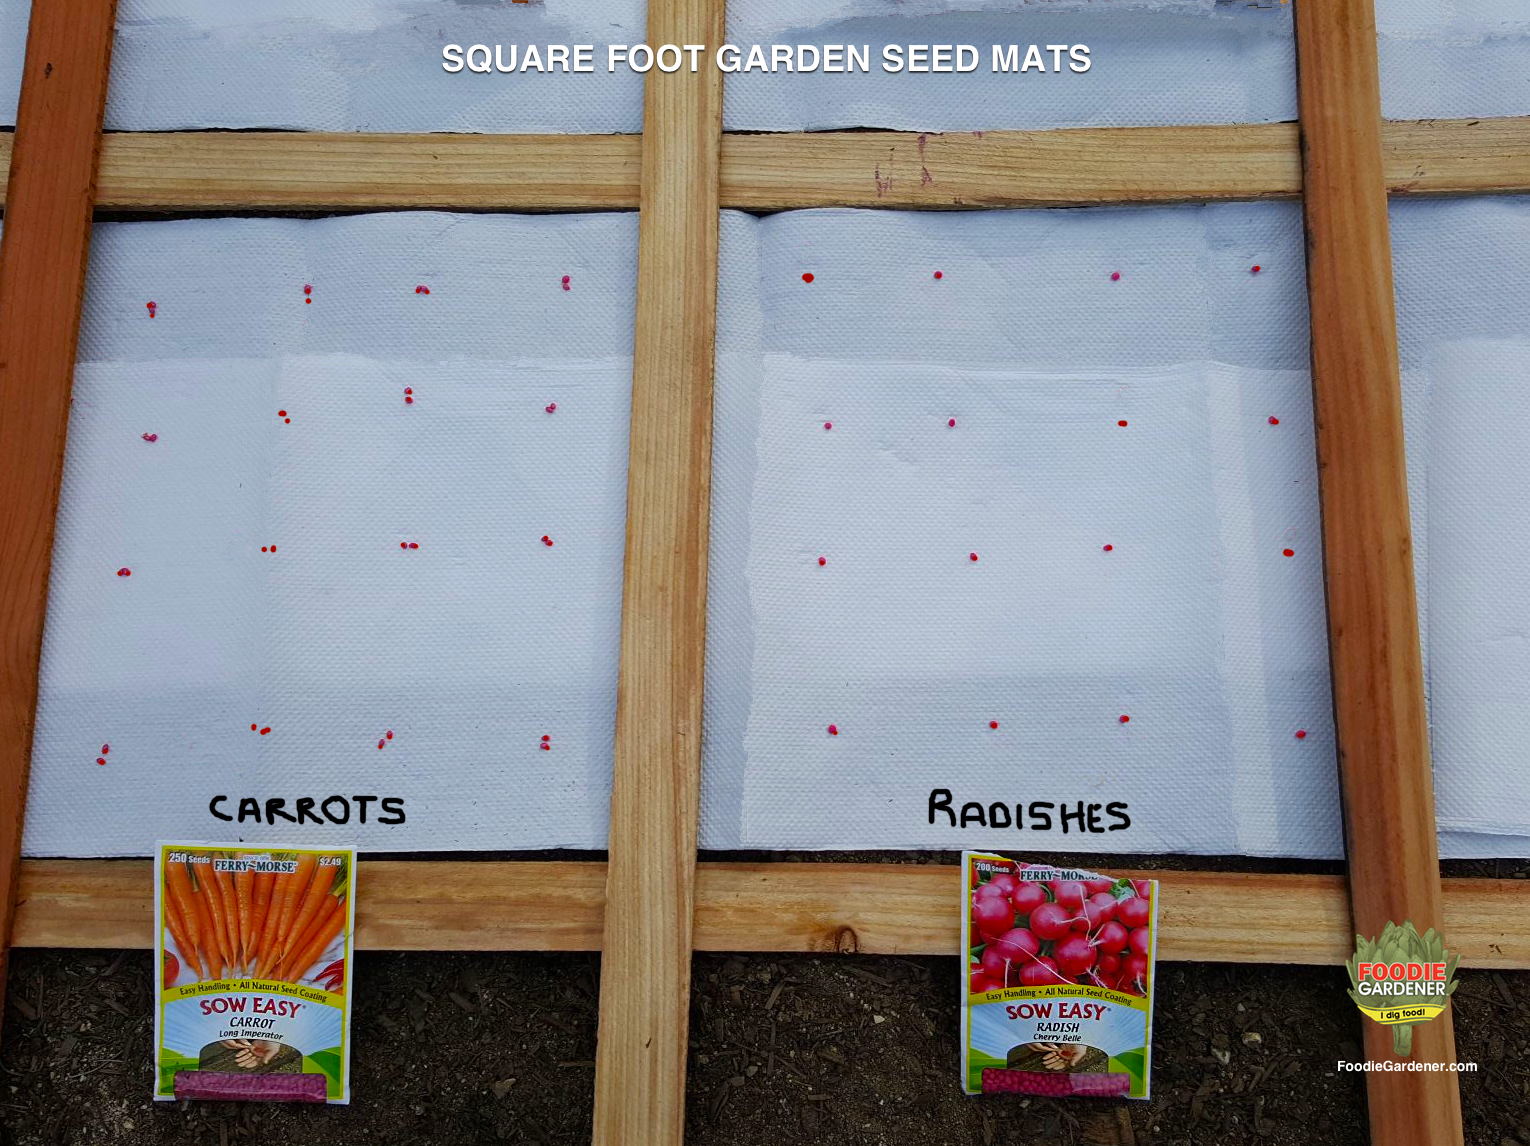 diy vegetable seed mats for square foot gardens the foodie gardener